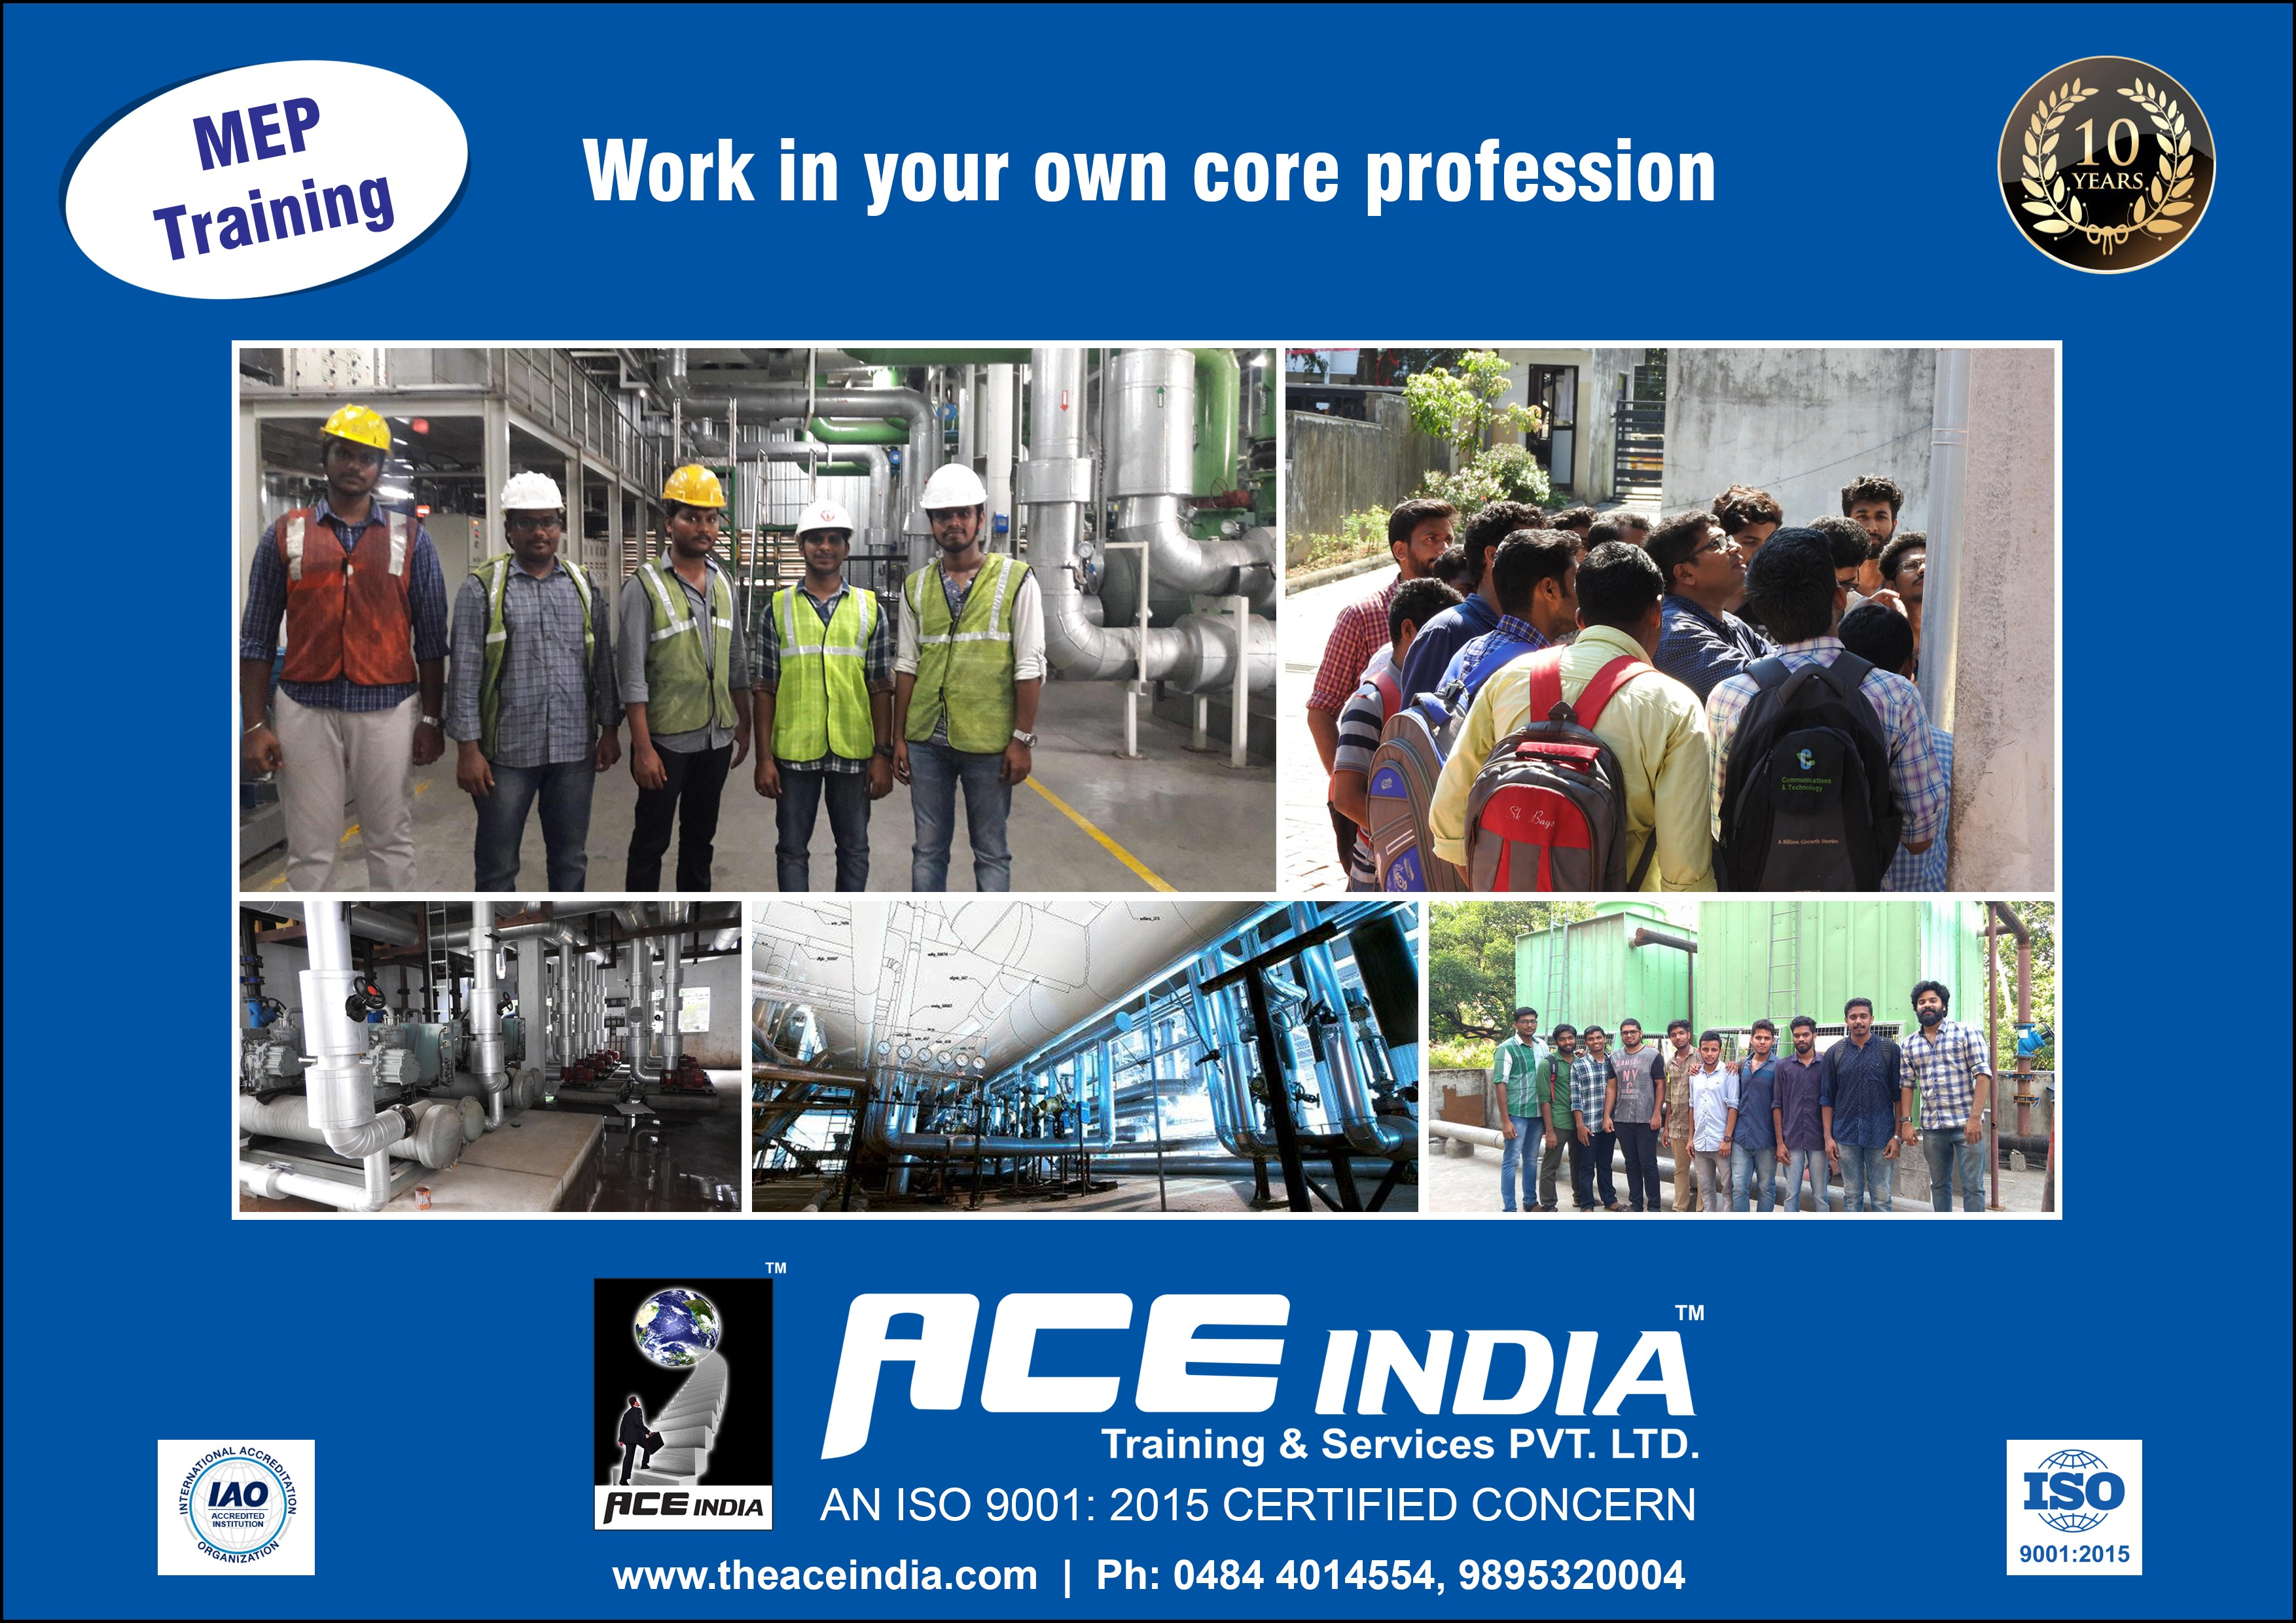 Ace India Training And Services Pvt Ltd Linkedin